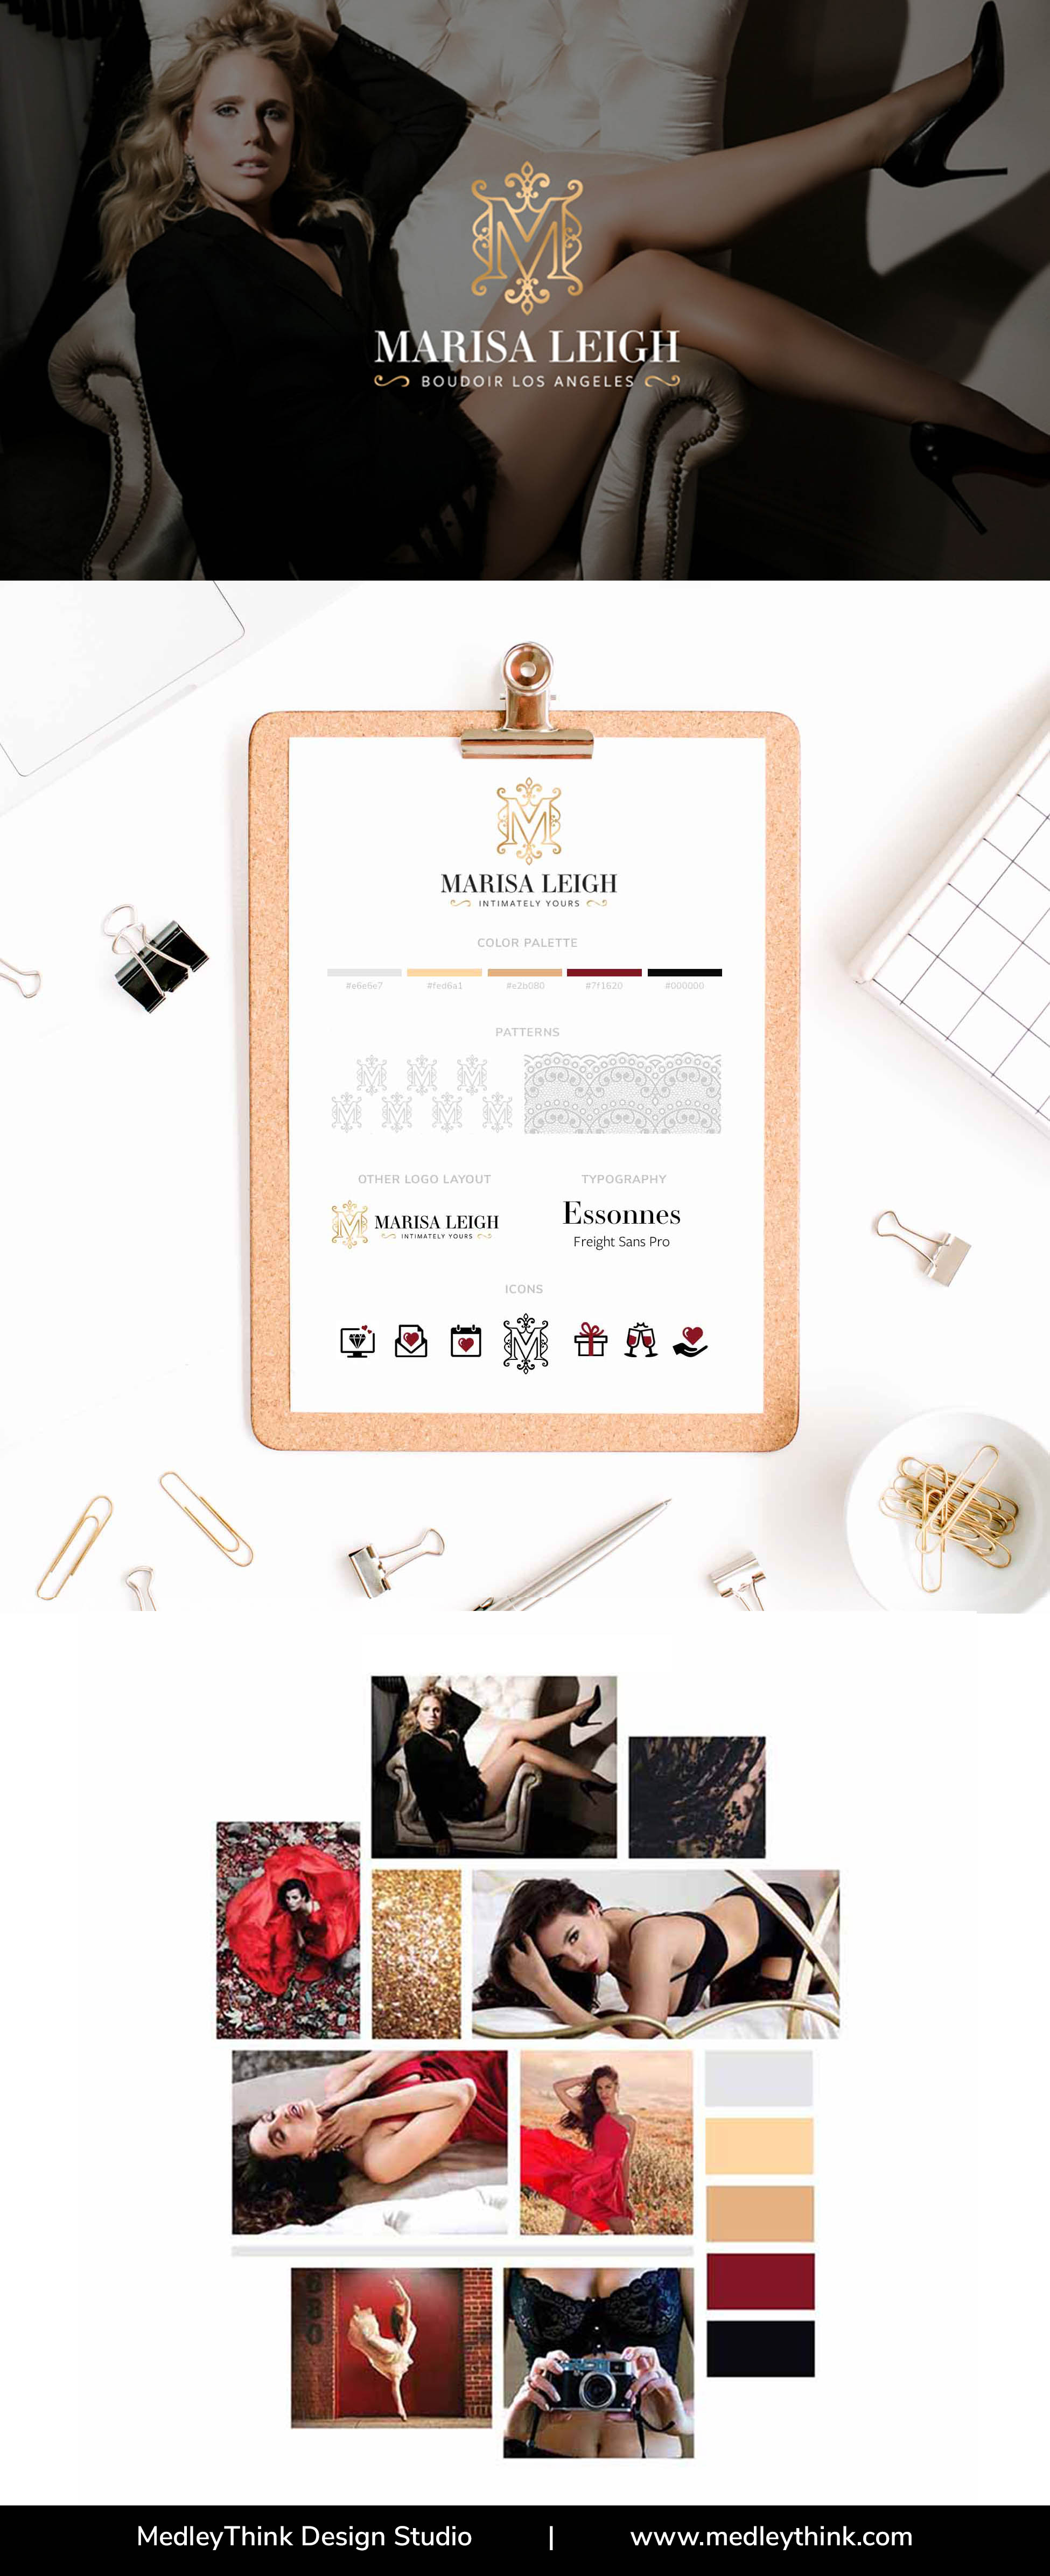 Branding Style Board for Marisa Leigh - Boudoir Photographer | Visit our website www.medleythink.com for more! #moodboard #inspirationboard #colorpalette #branding